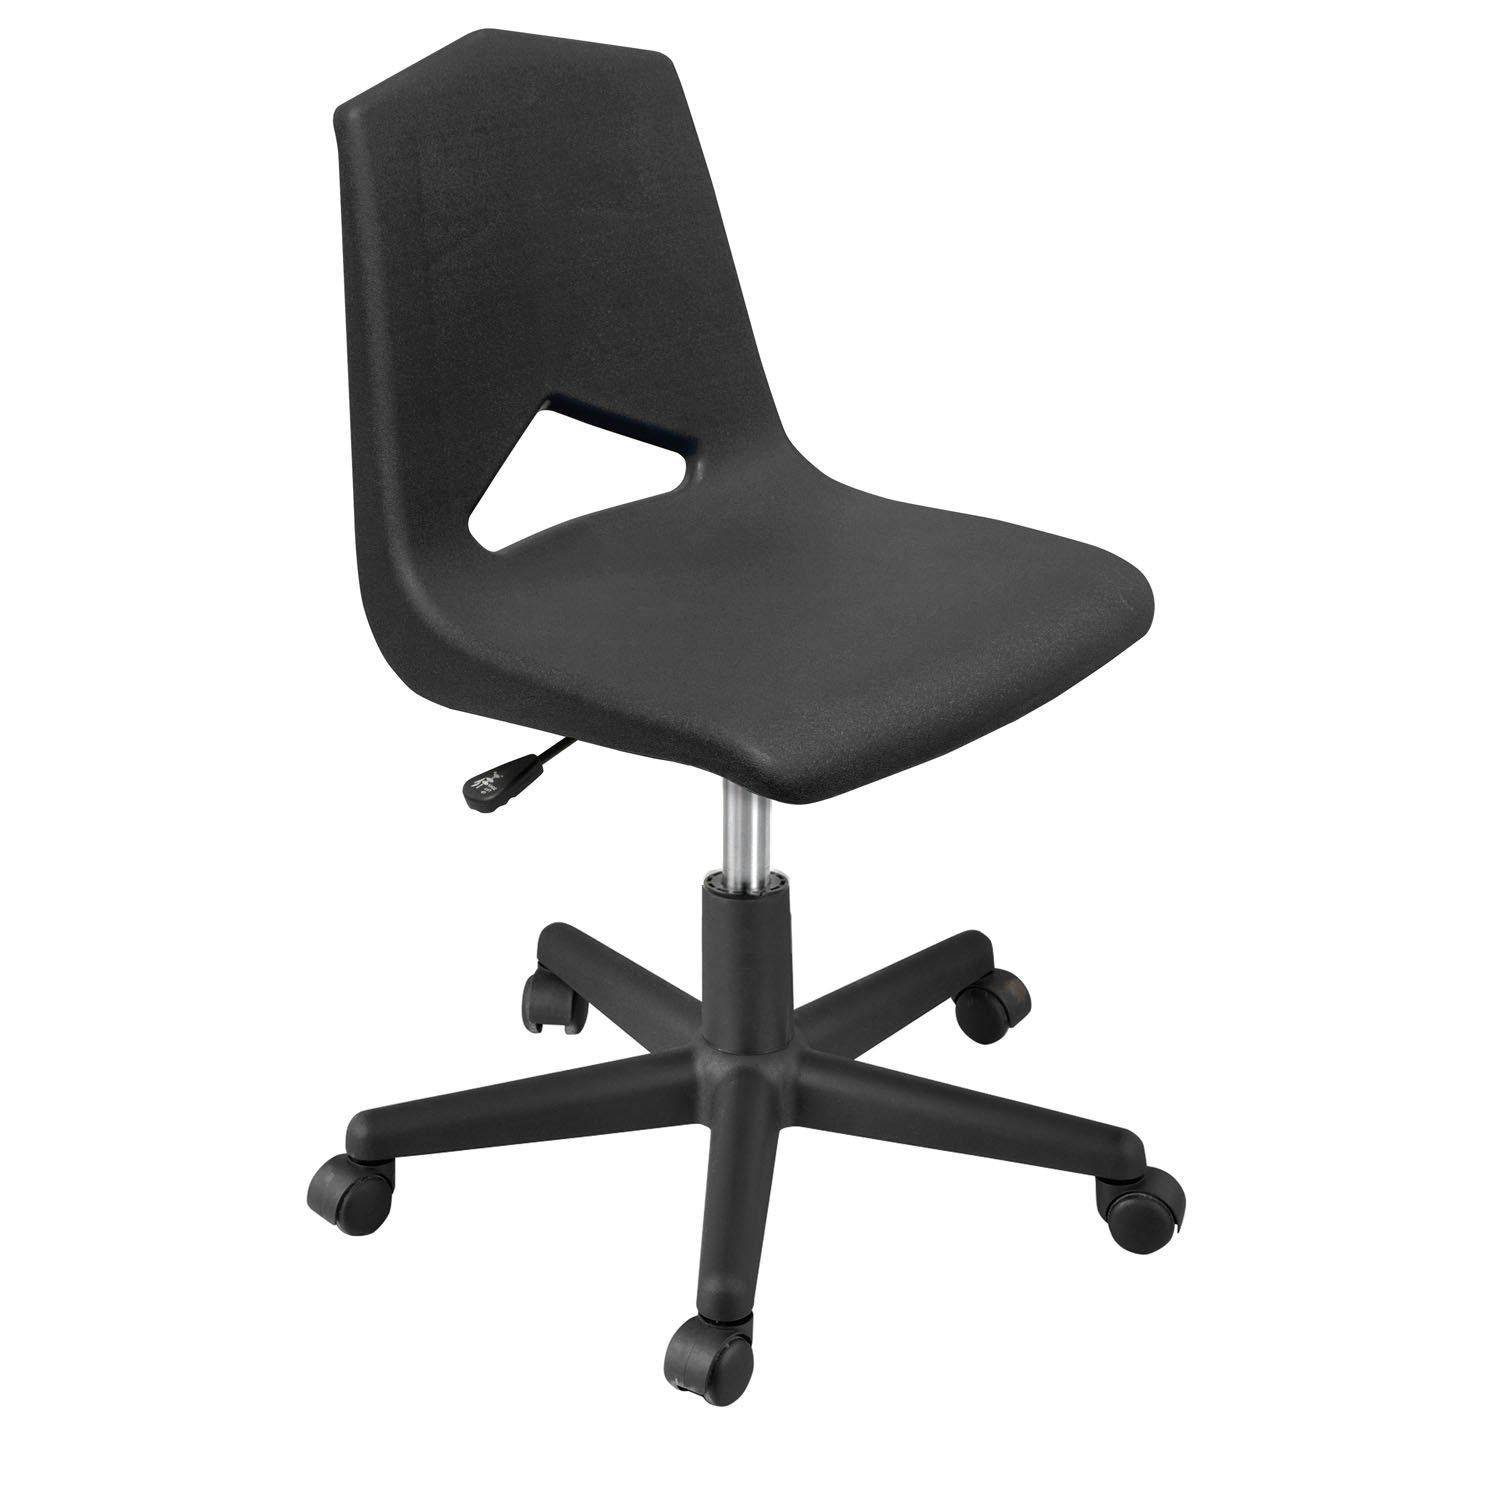 MG1100 Series Gas Lift Task Chair with 5-Star Base